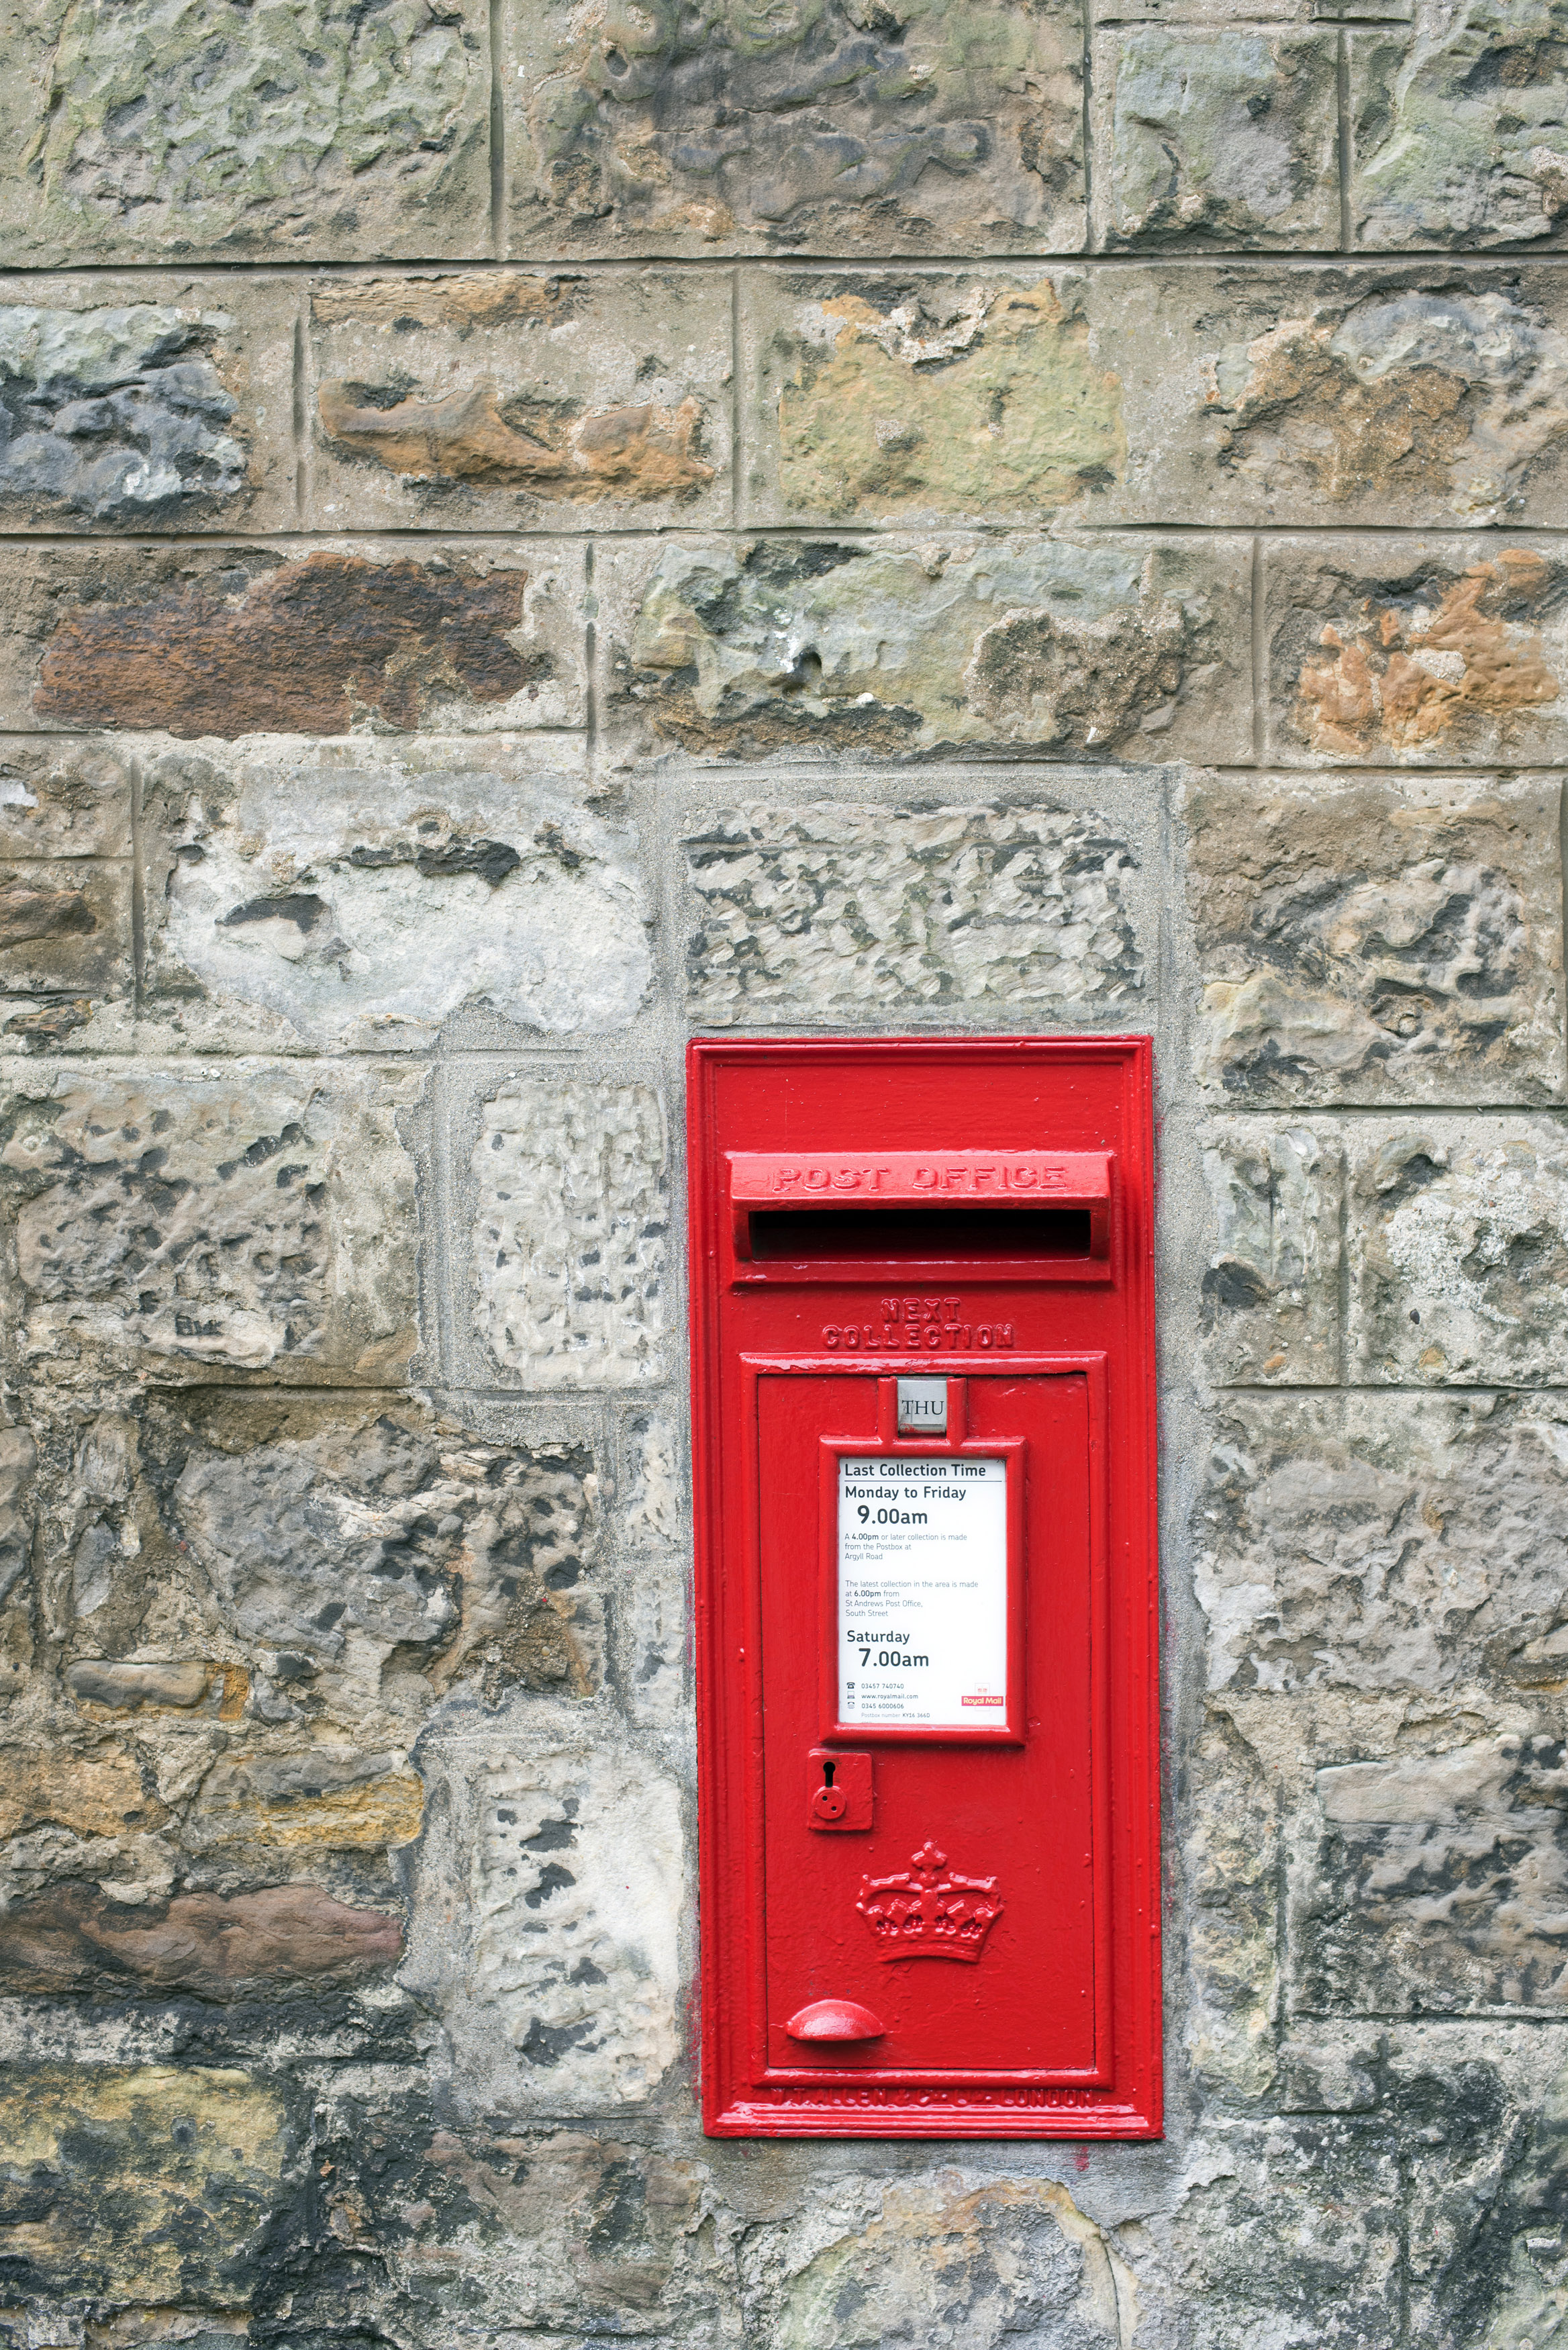 Royal Mail Letter Box.Free Image Of Red Royal Mail Letterbox In A Stone Wall